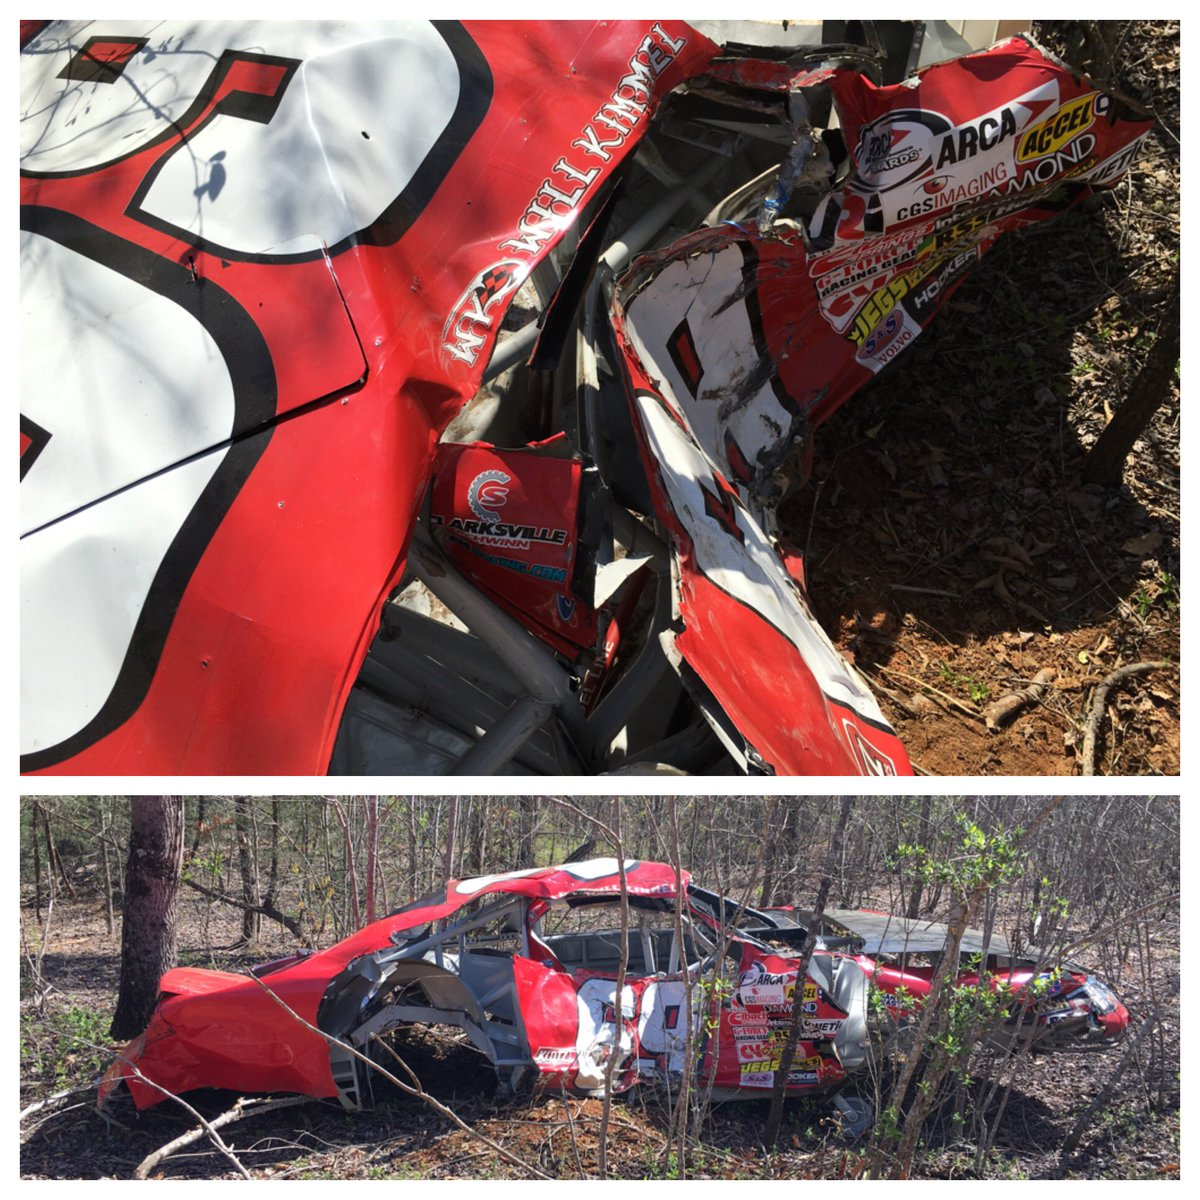 Dale Earnhardt Jr Collects Wrecked Race Cars